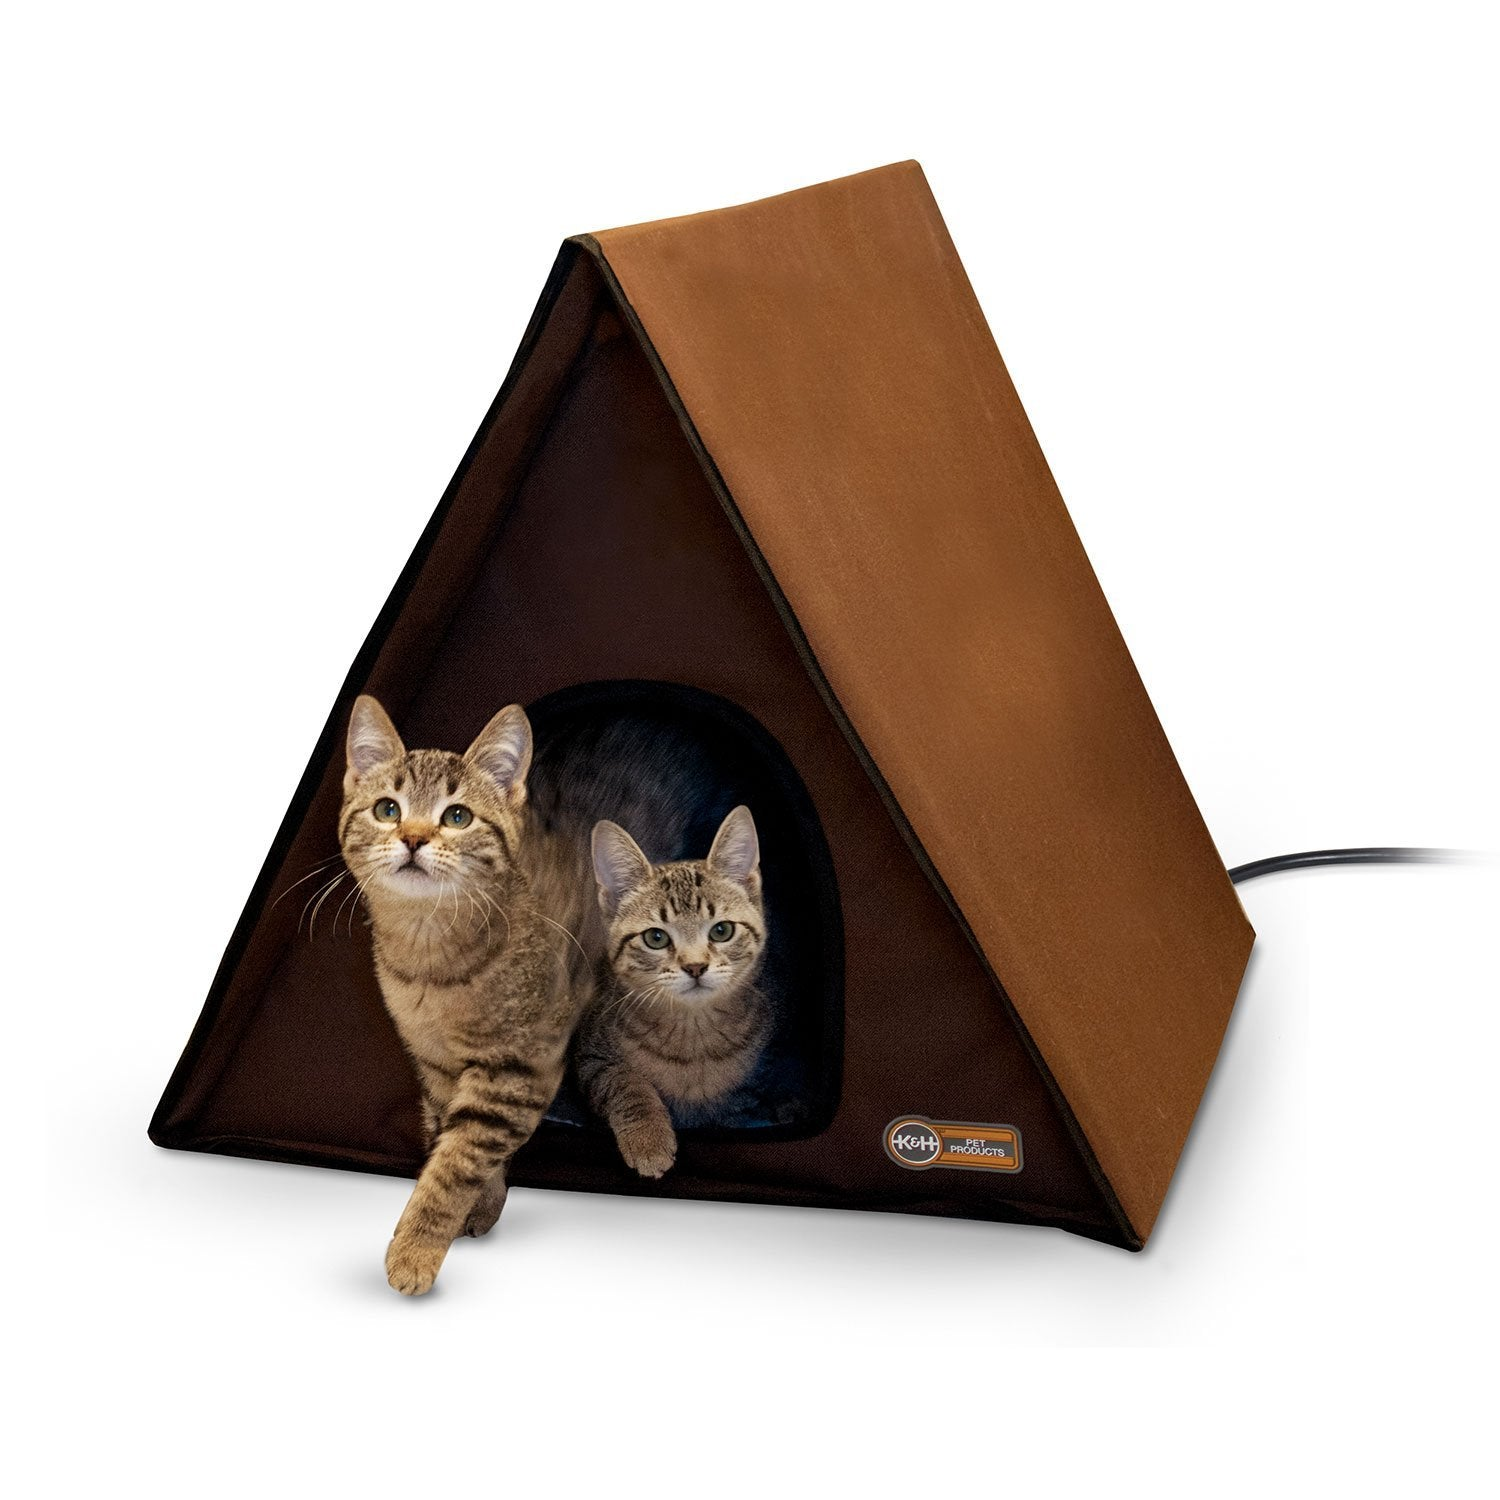 K&H Manufacturing Kh3992 Outdoor Heated Multiple Kitty A-...